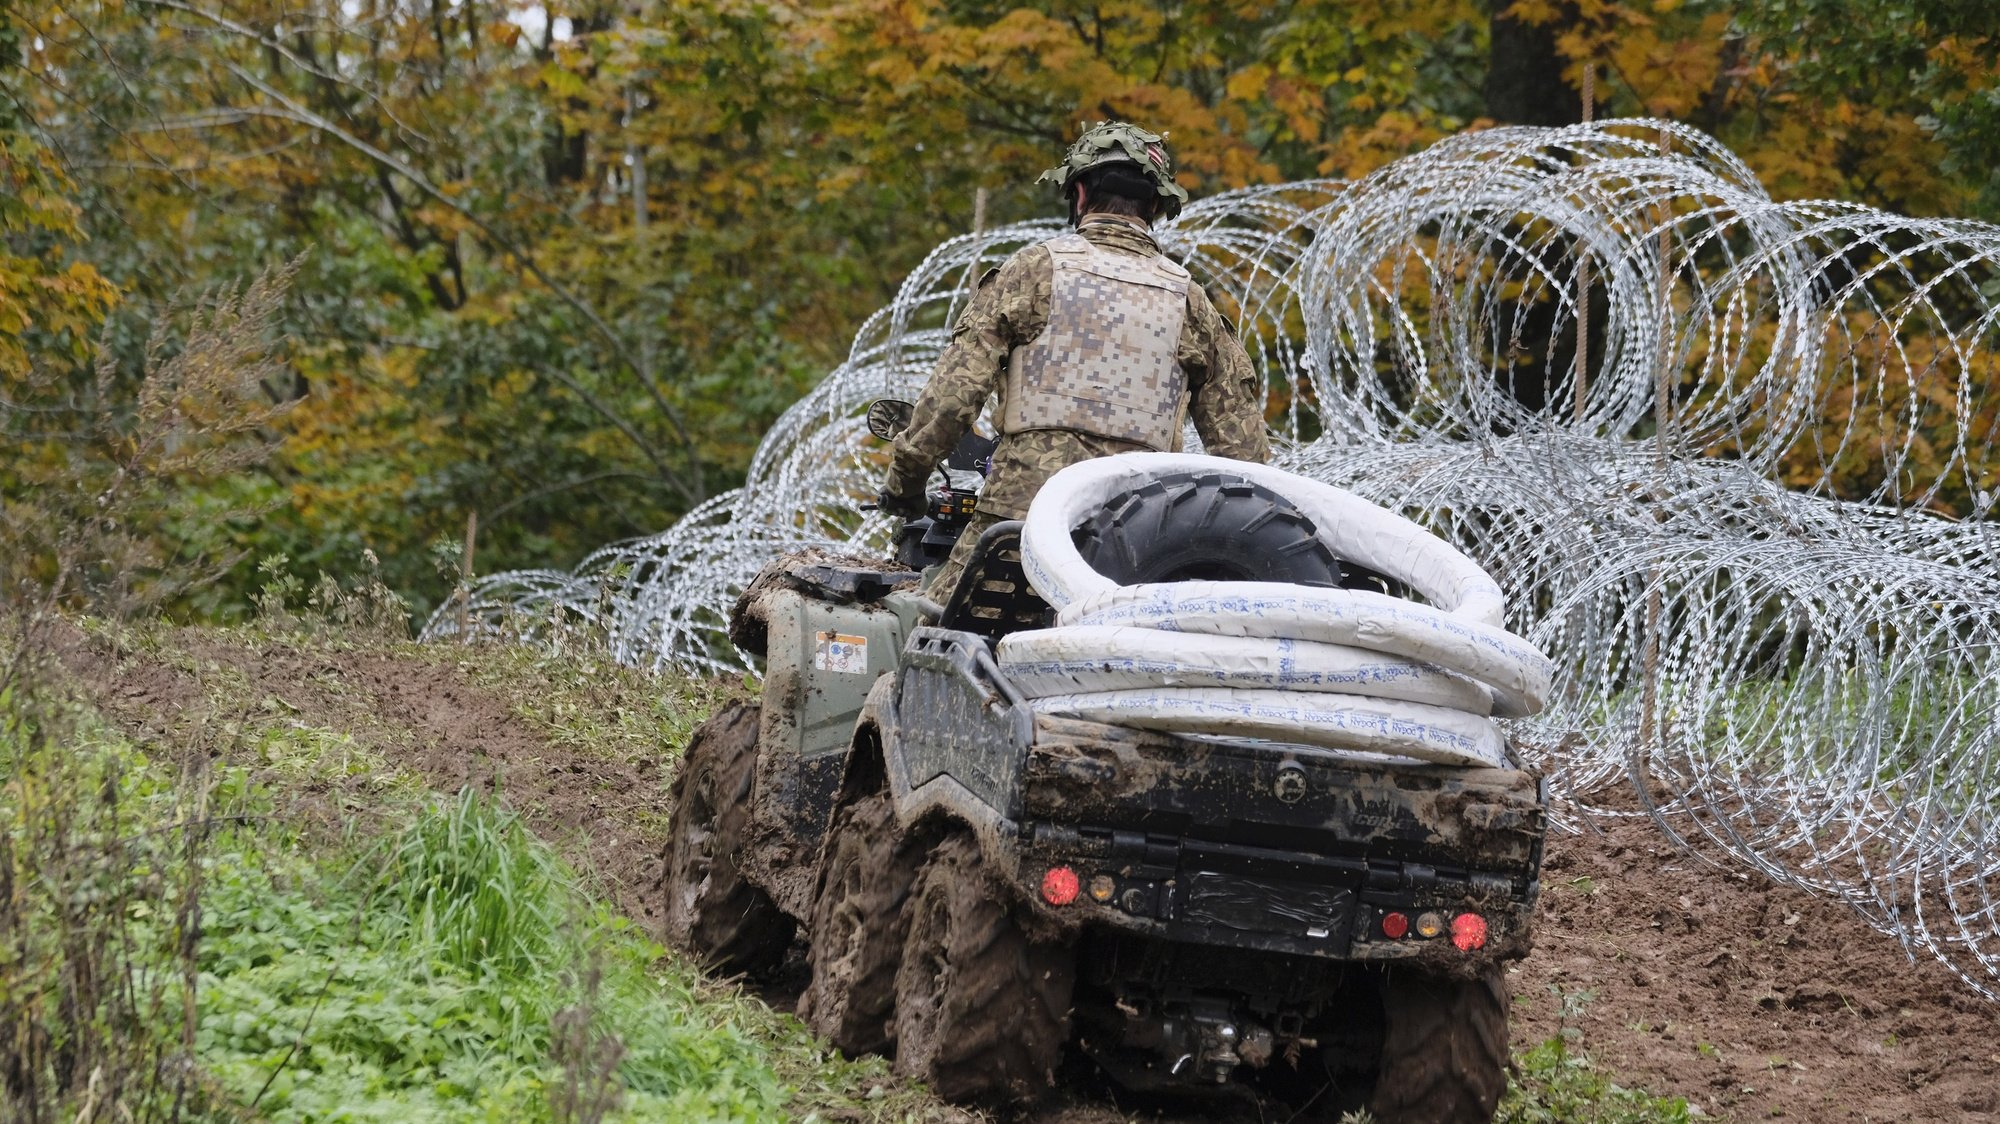 epa09493122 A soldier of Latvian National Armed Forces (NAF) patrols along a new barbed wire fence, donated by the Slovenian Ministry of Defense, on the state border with Belarus in Kraslava region, Latvia, 28 September 2021. This fence will cover the most critical border areas. Since August 10, a total of about 850 people have been reportedly deterred from crossing the state border illegally. According to the officials of Latvia, Lithuania and Poland, the pressure of migrants on the border is organized by Belarus.  EPA/VALDA KALNINA